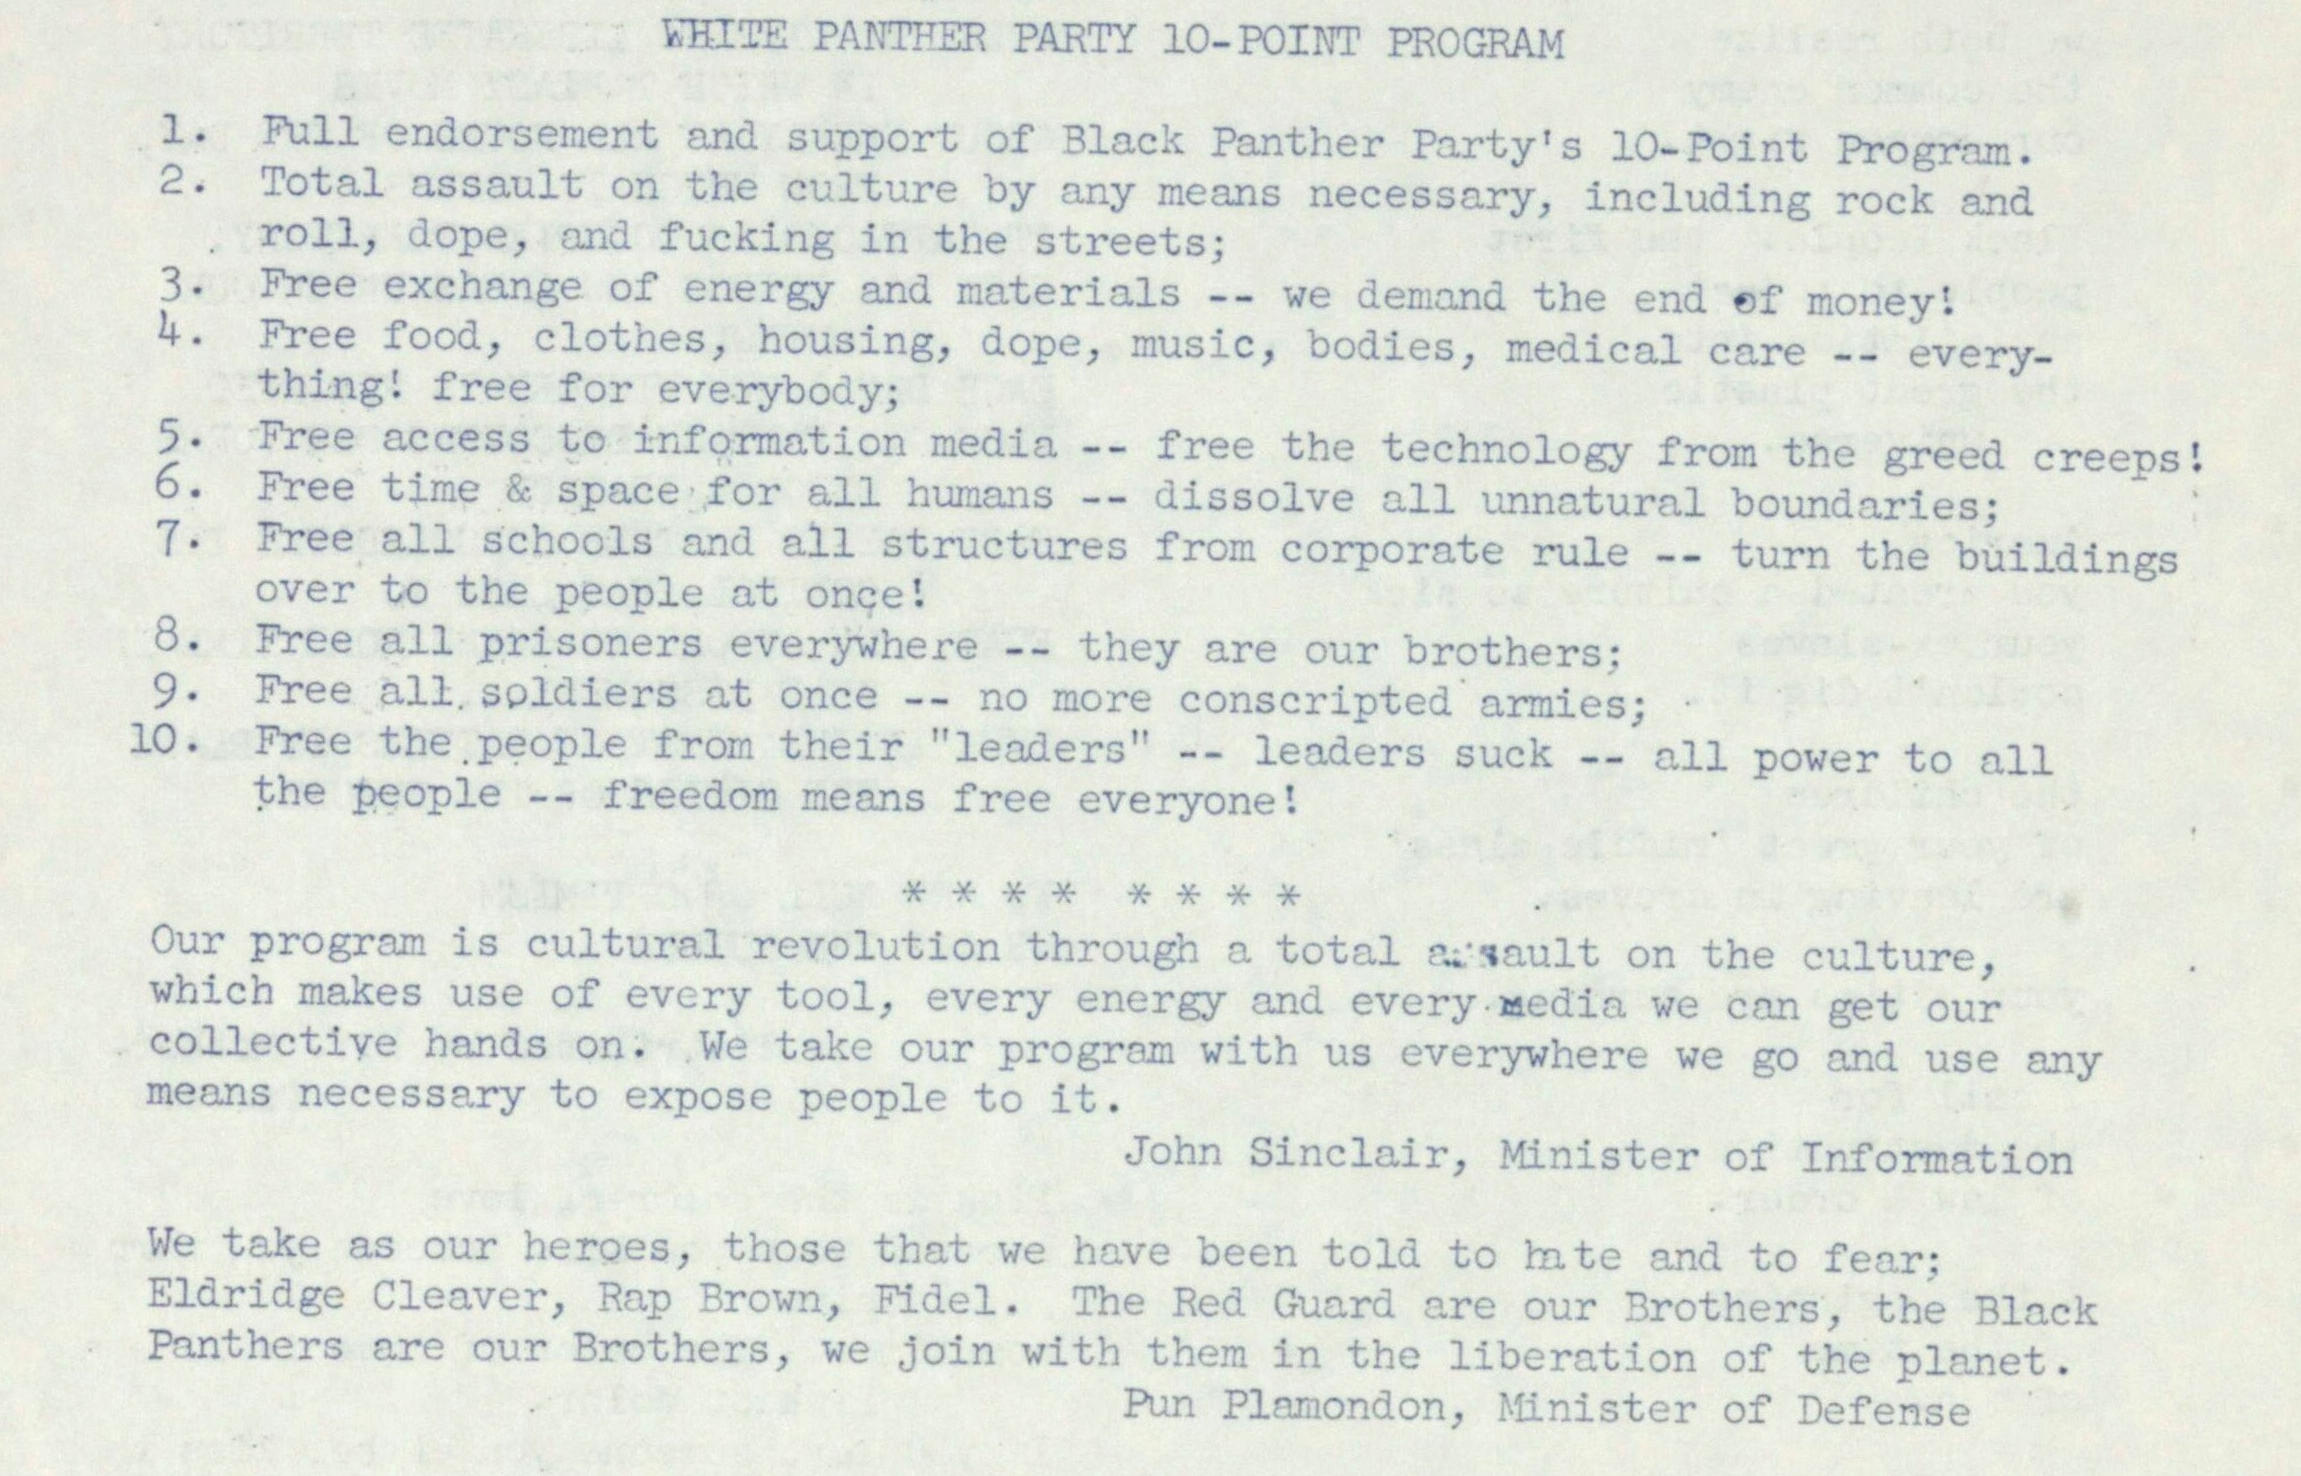 White Panther Party 10-point Program image